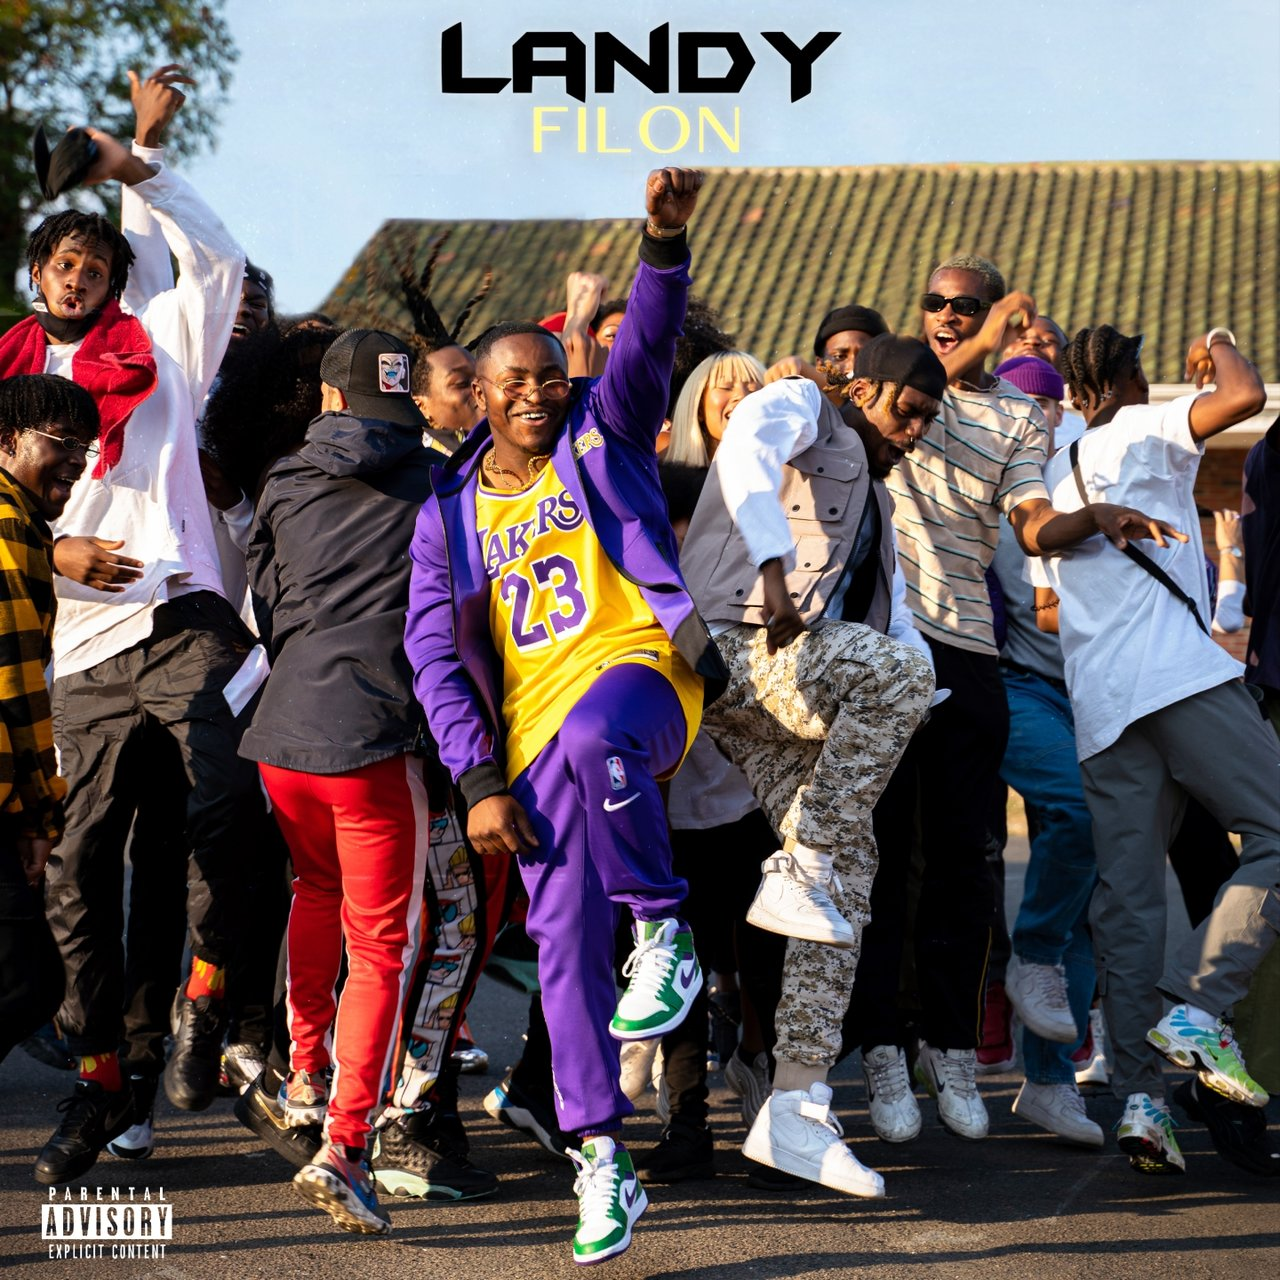 Landy - Filon (Cover)